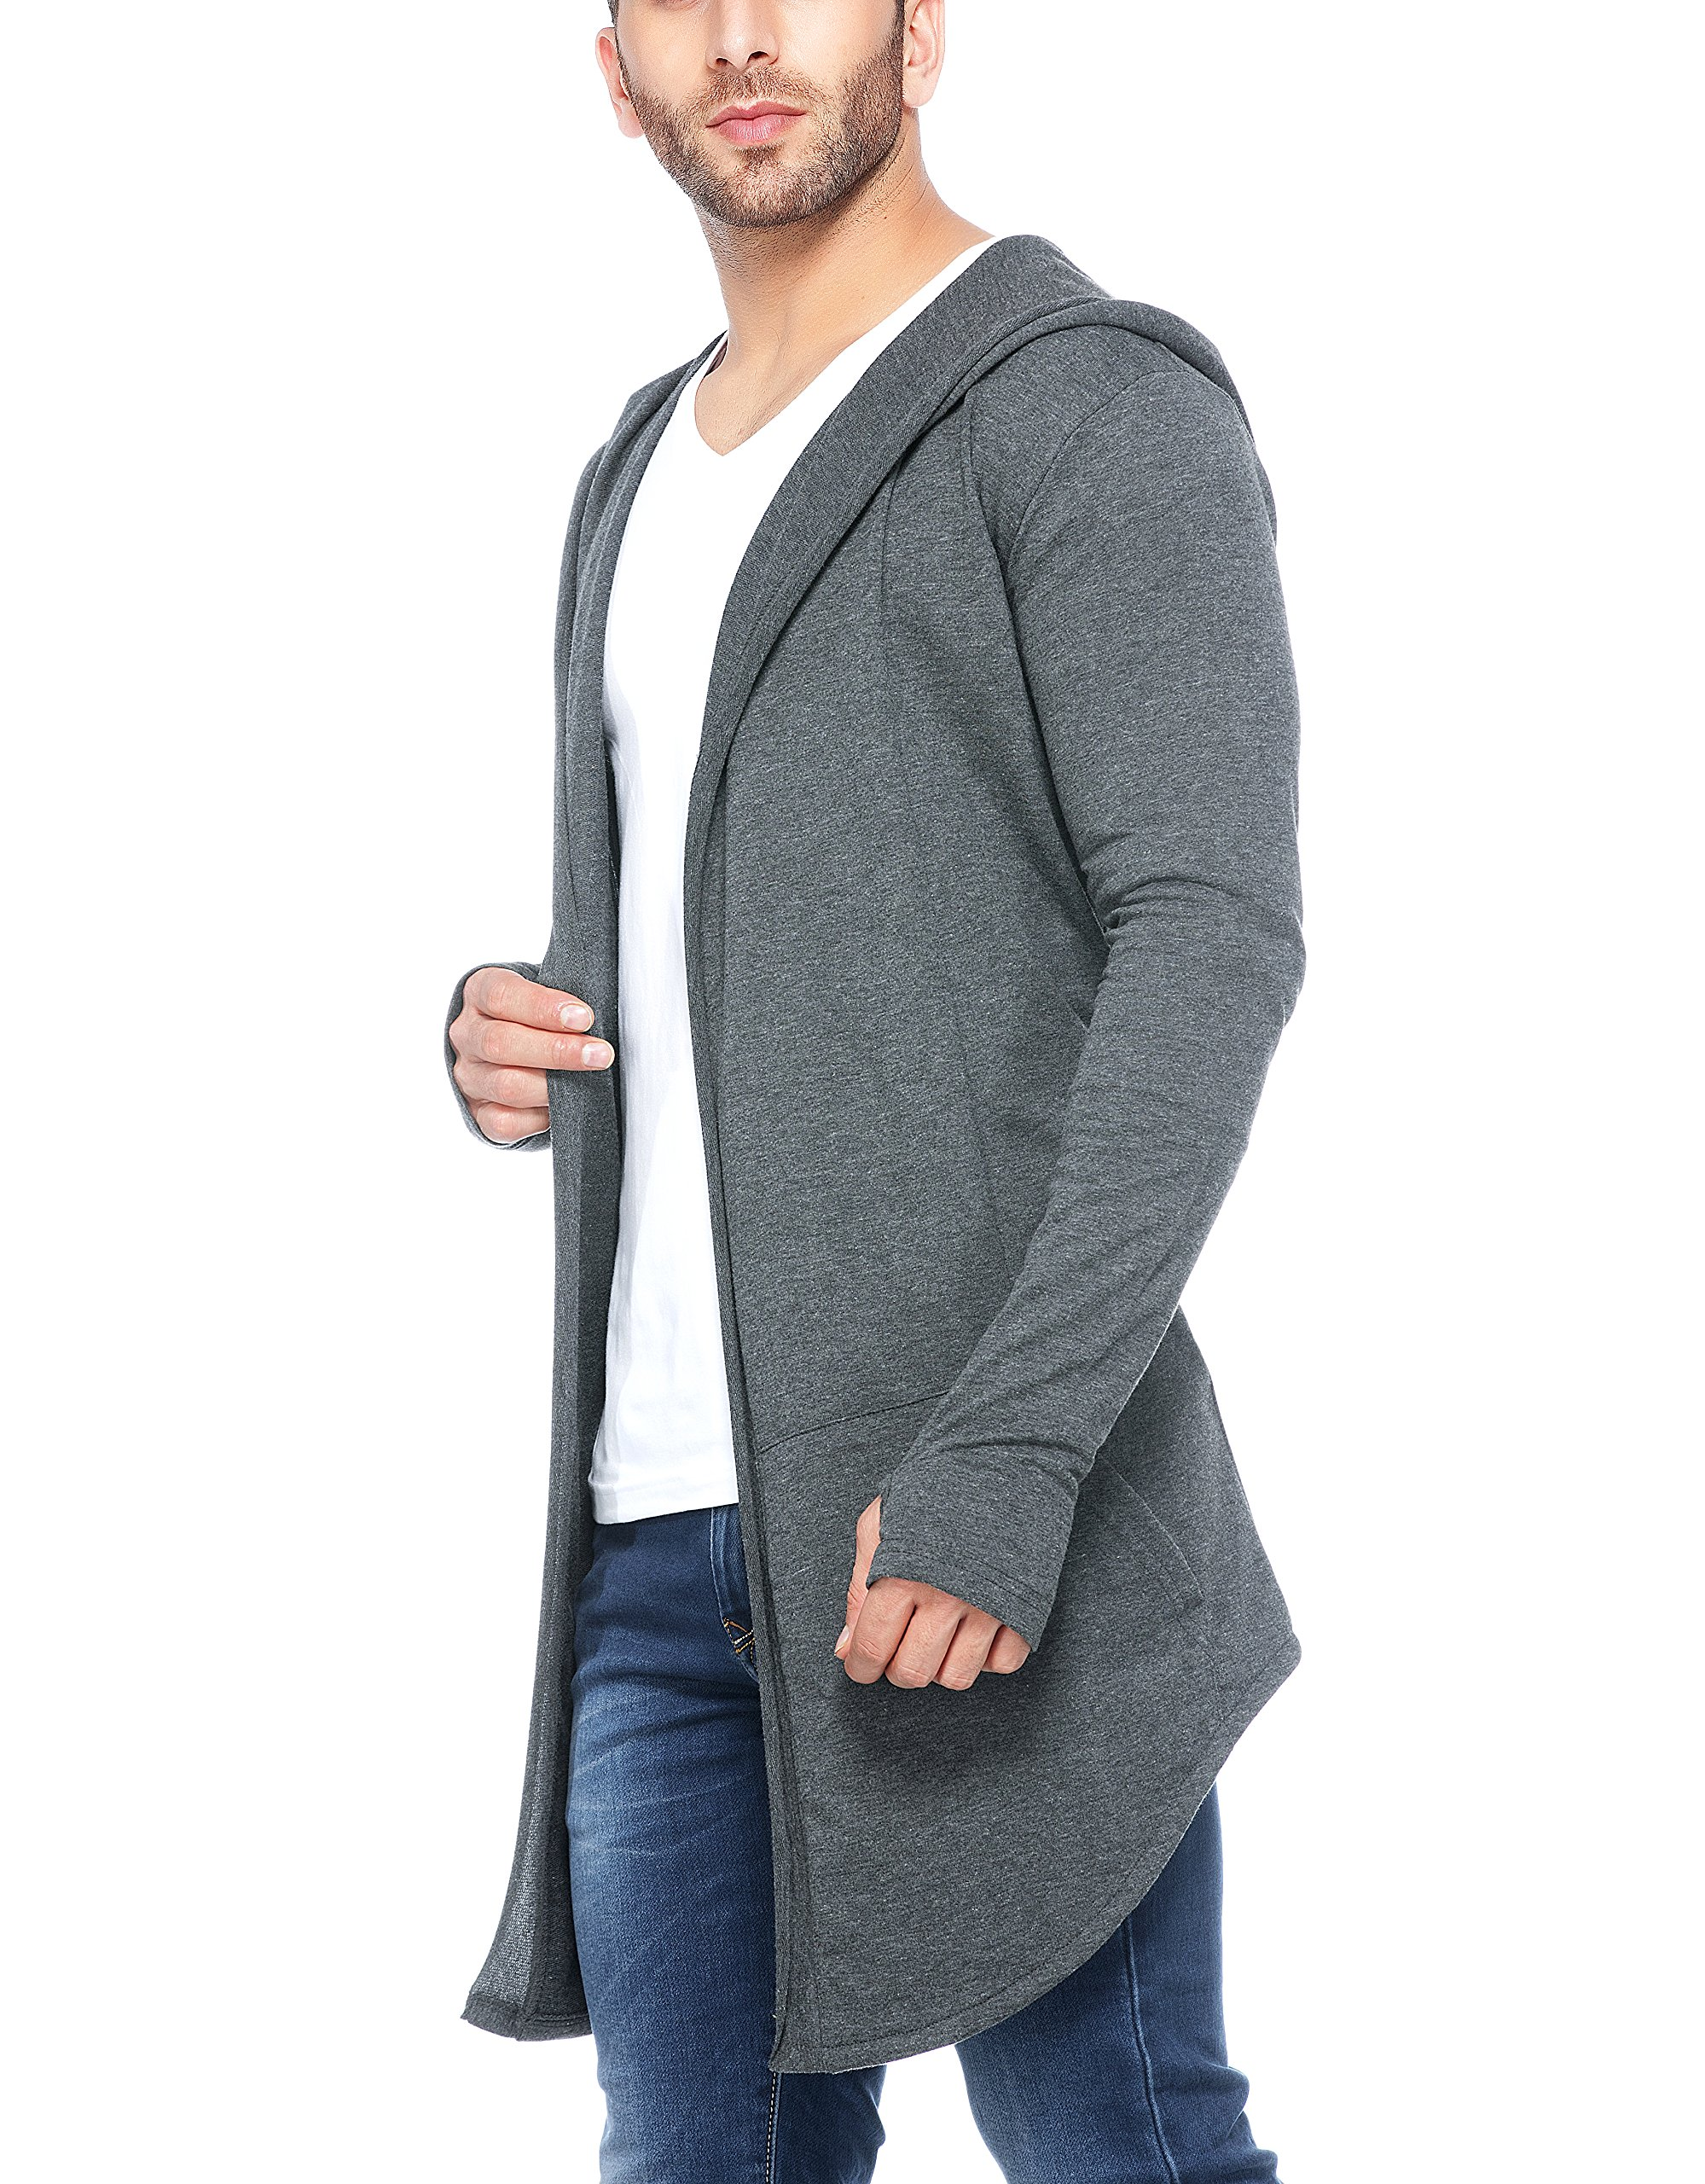 Tinted Men's Cotton Blend Hooded Long Line Cardigan with Thumb Insert